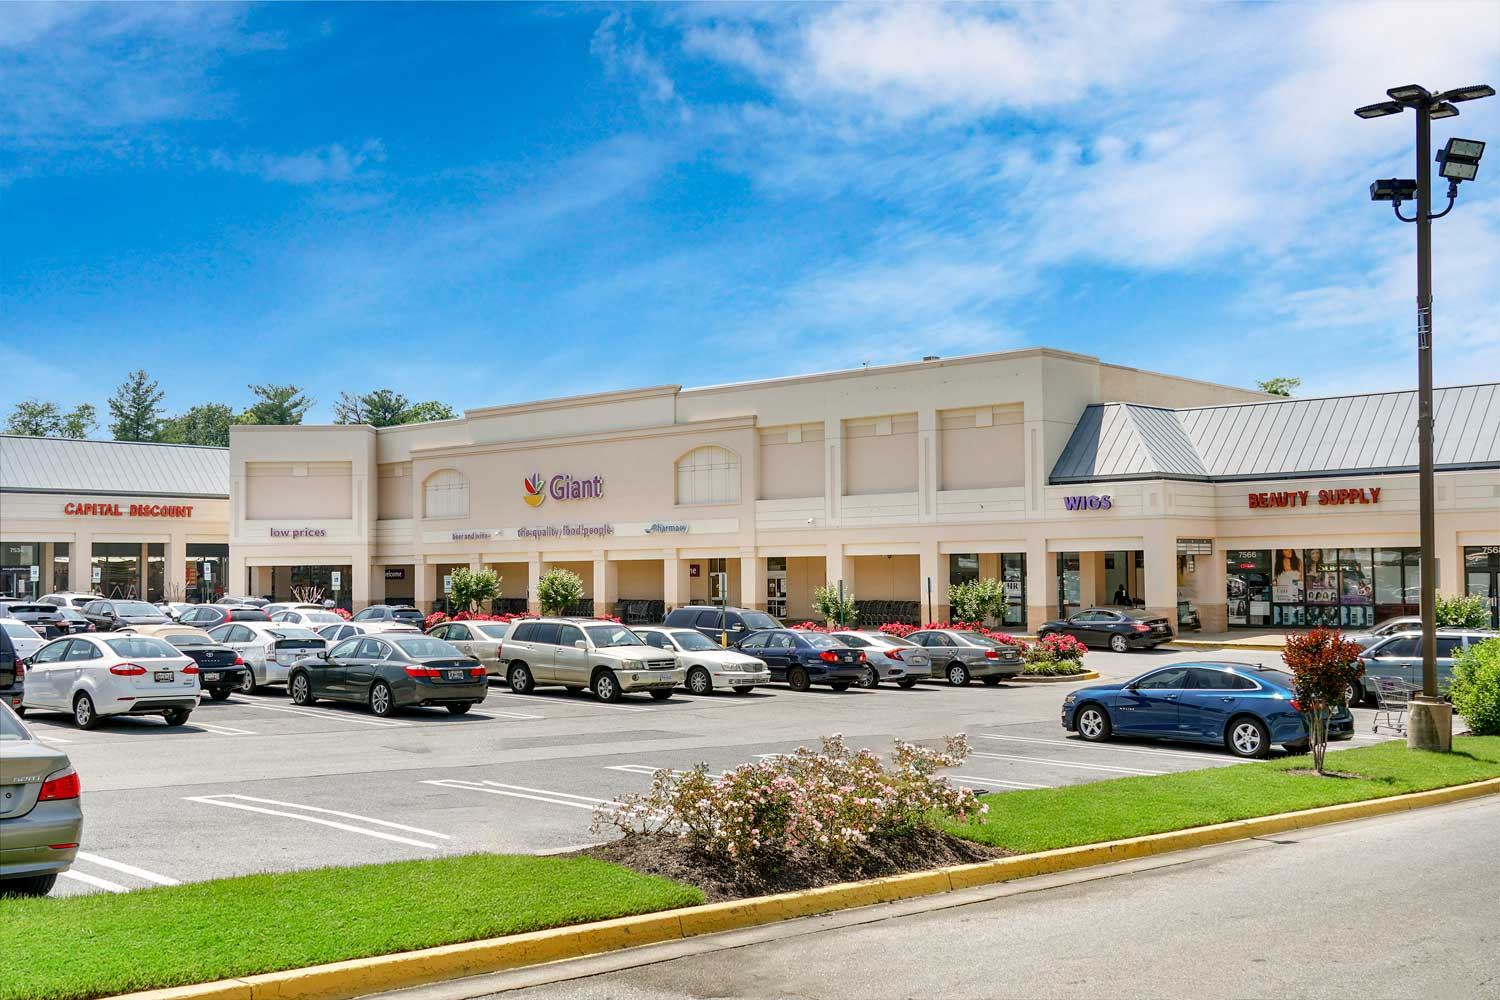 Giant Food is 5 minutes from Heritage Square Apartments in New Carrollton, MD